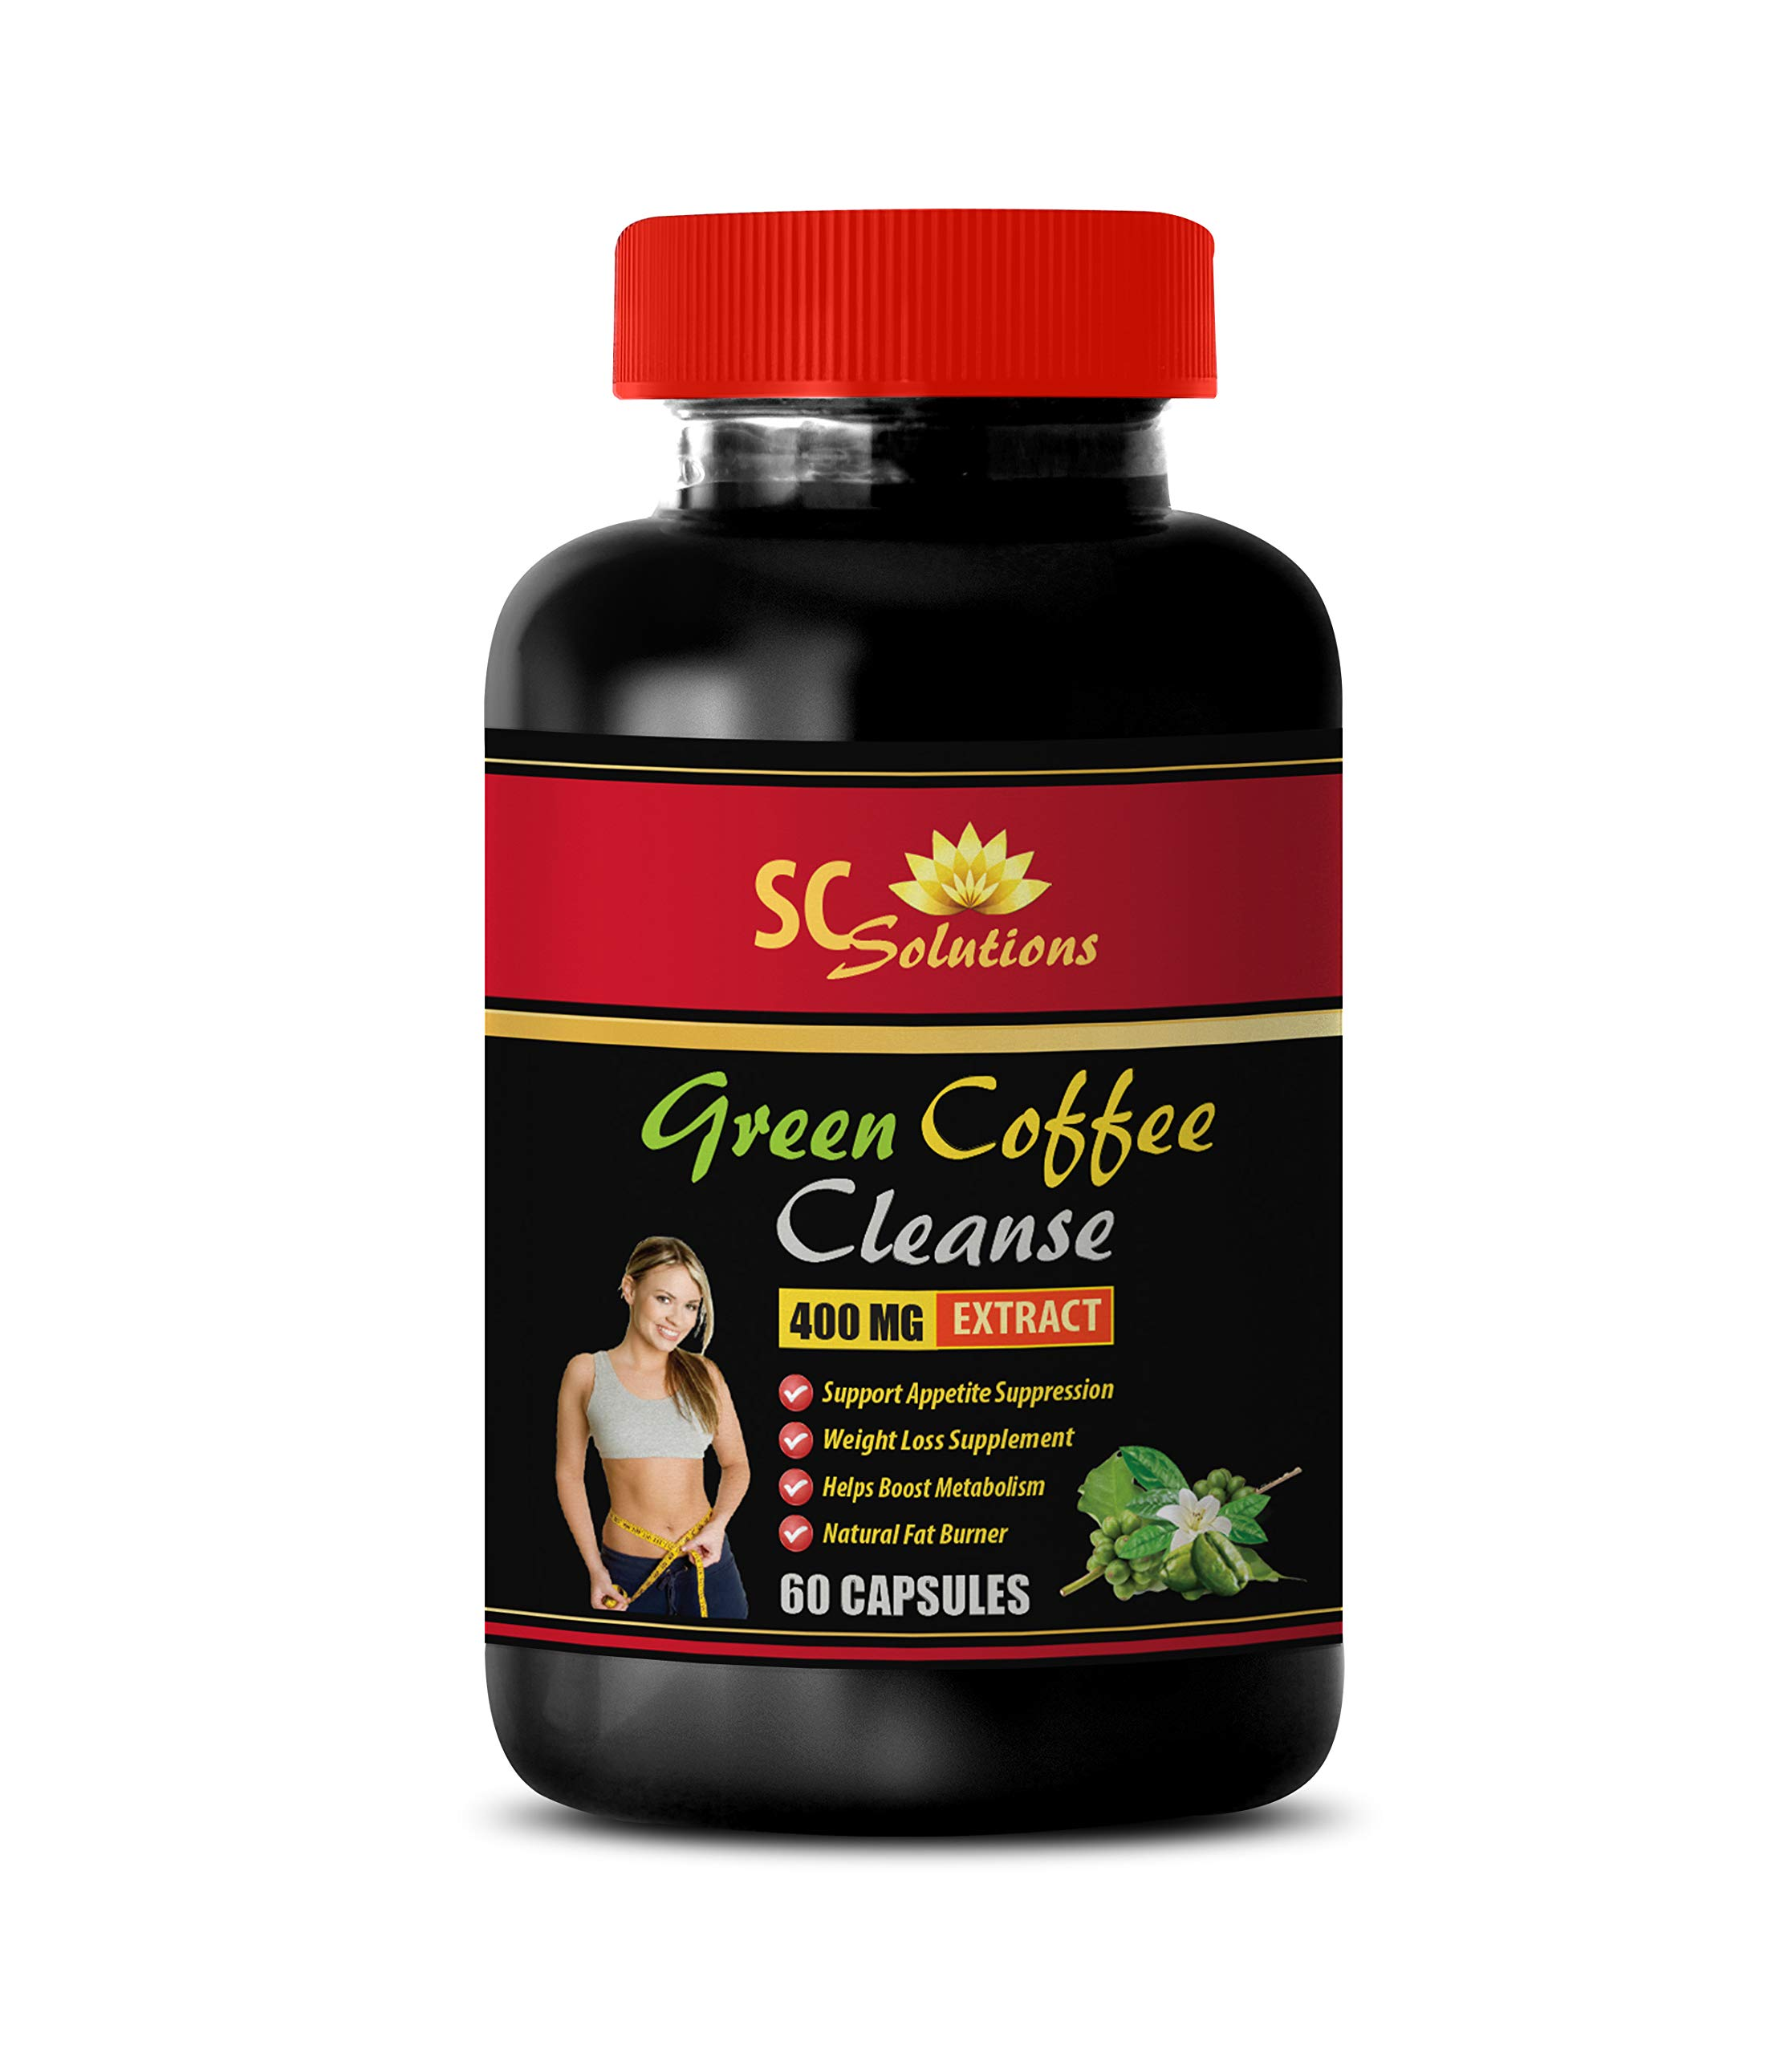 Skin Care Supplements - Natural Green Coffee Bean Extract Cleanse 400 mg - Green Coffee Bean Extract - 1 Bottle 60 Capsules